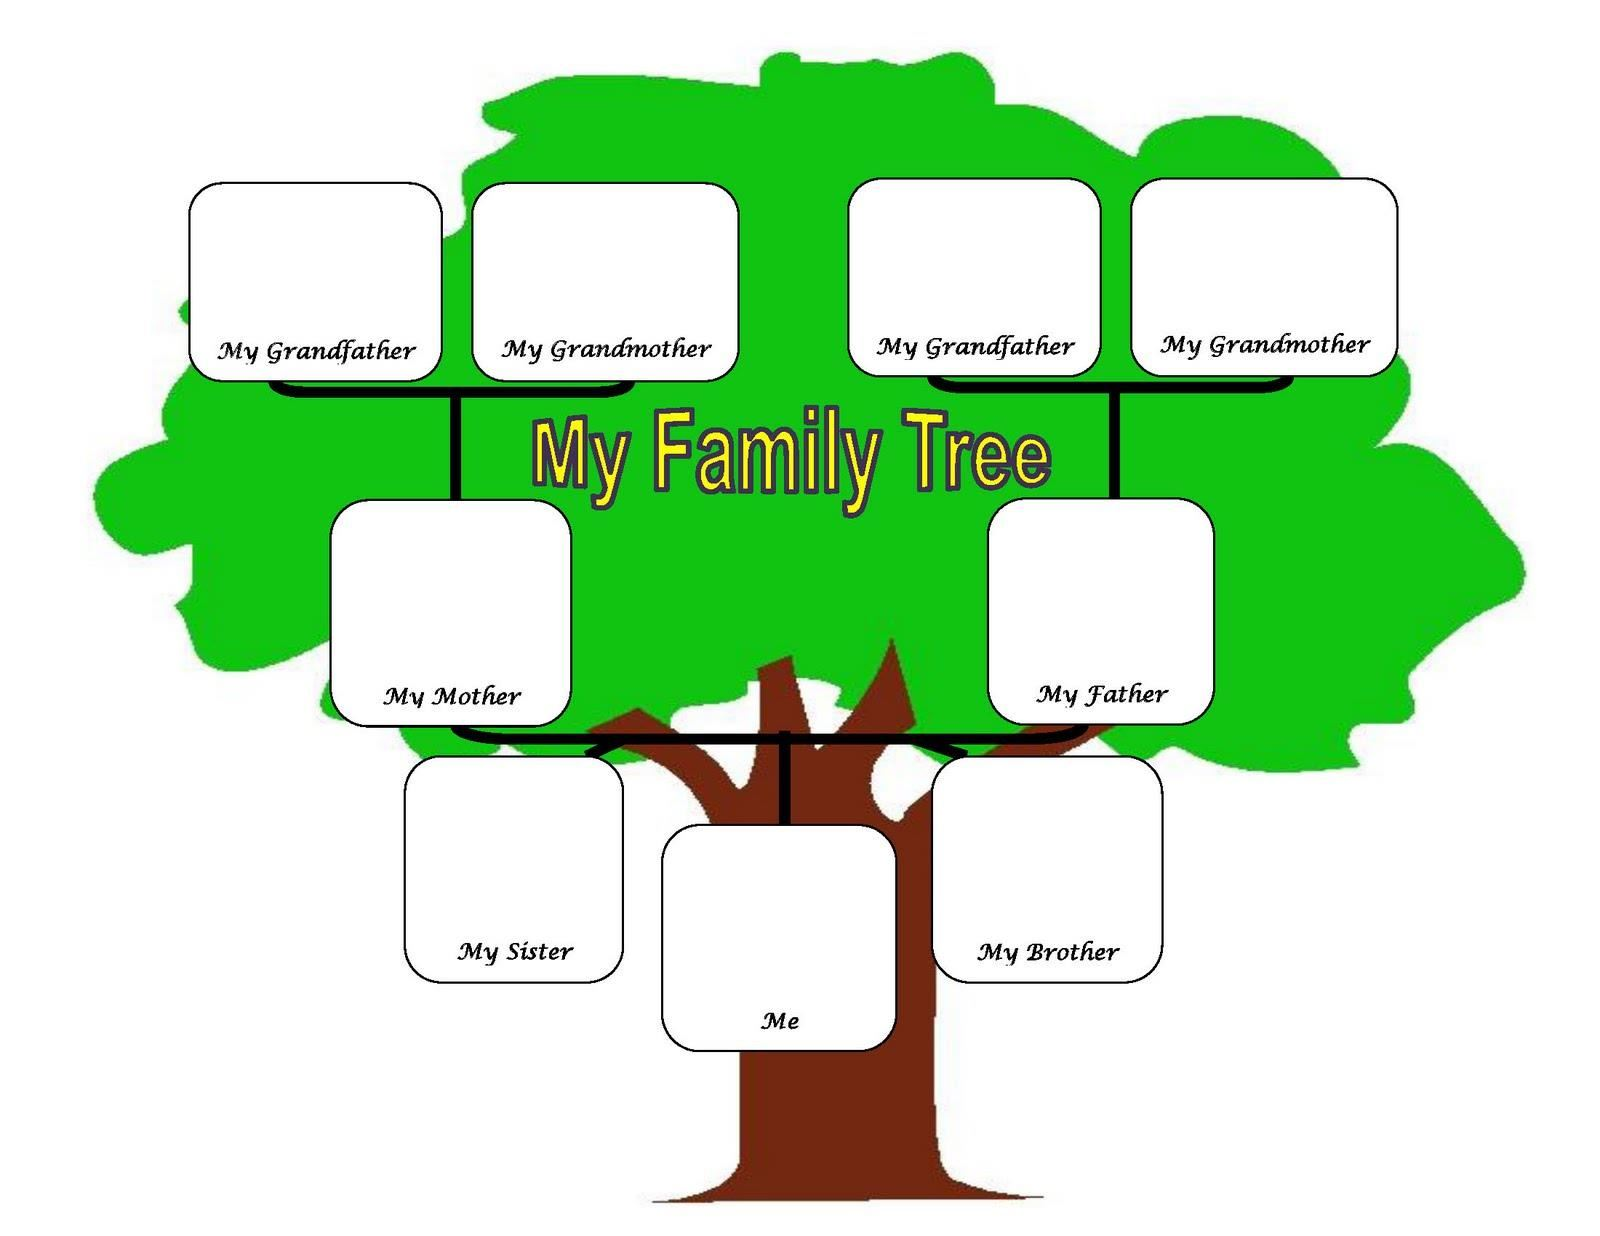 picture of family tree template - family tree rich image and wallpaper